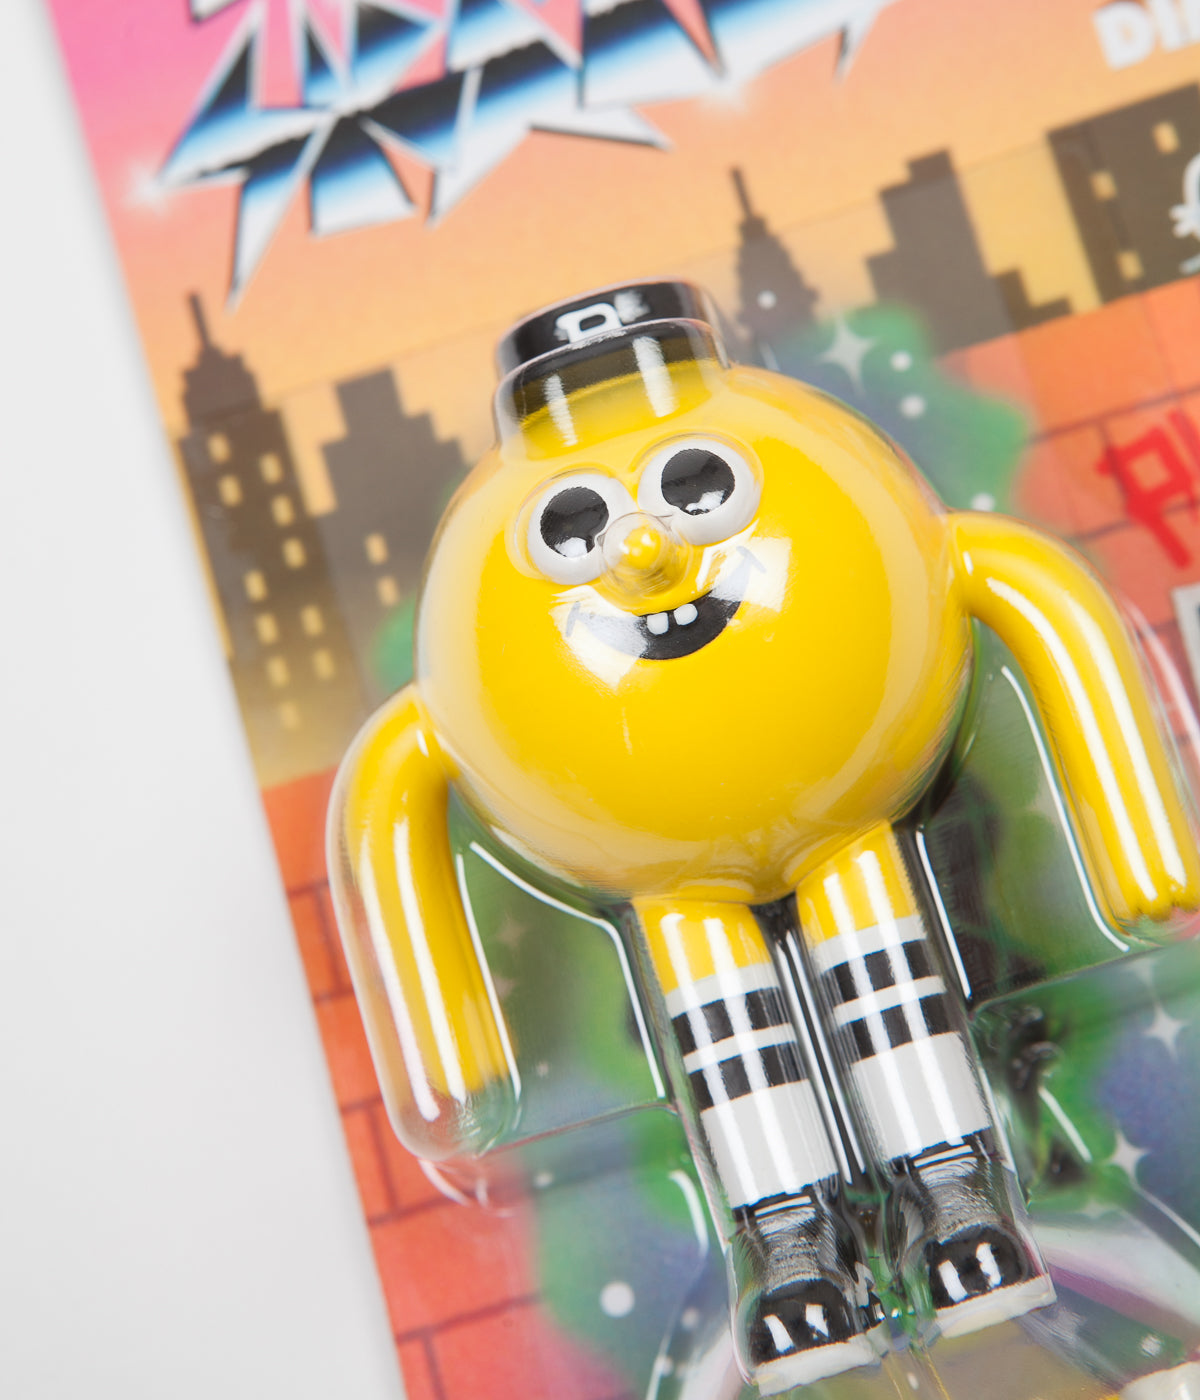 Blast Skates Toy - Yellow